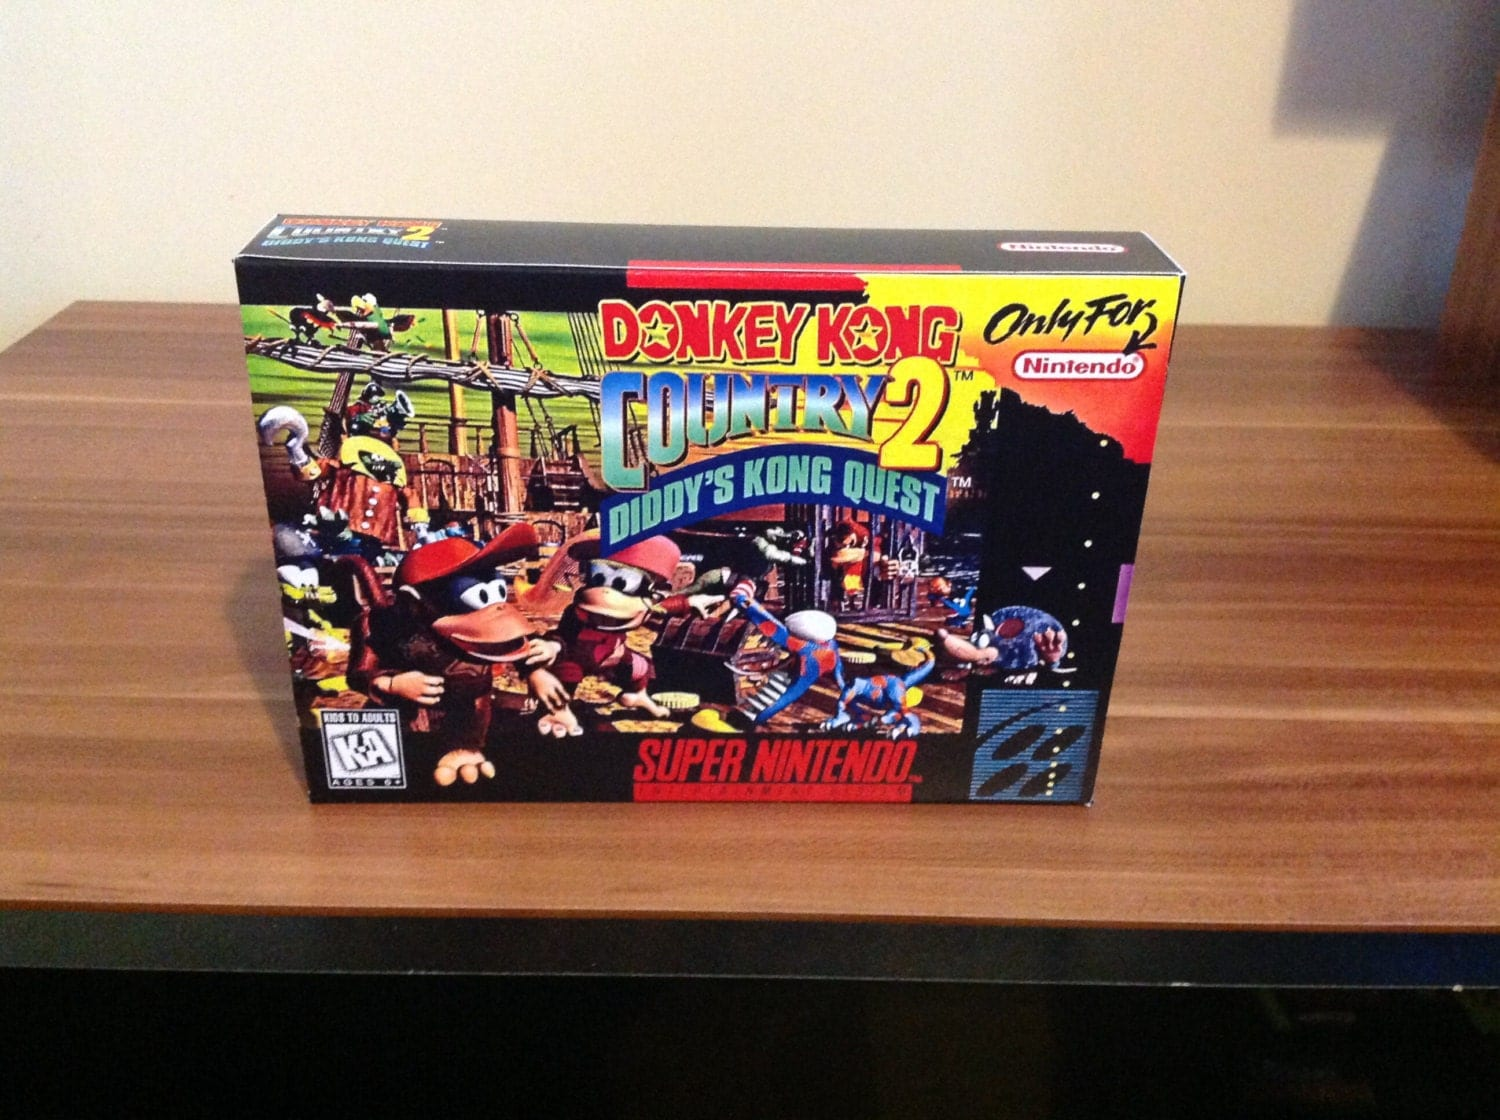 SNES Donkey Kong Country 2  Diddys Kong Quest  Repo Box NO Game Included